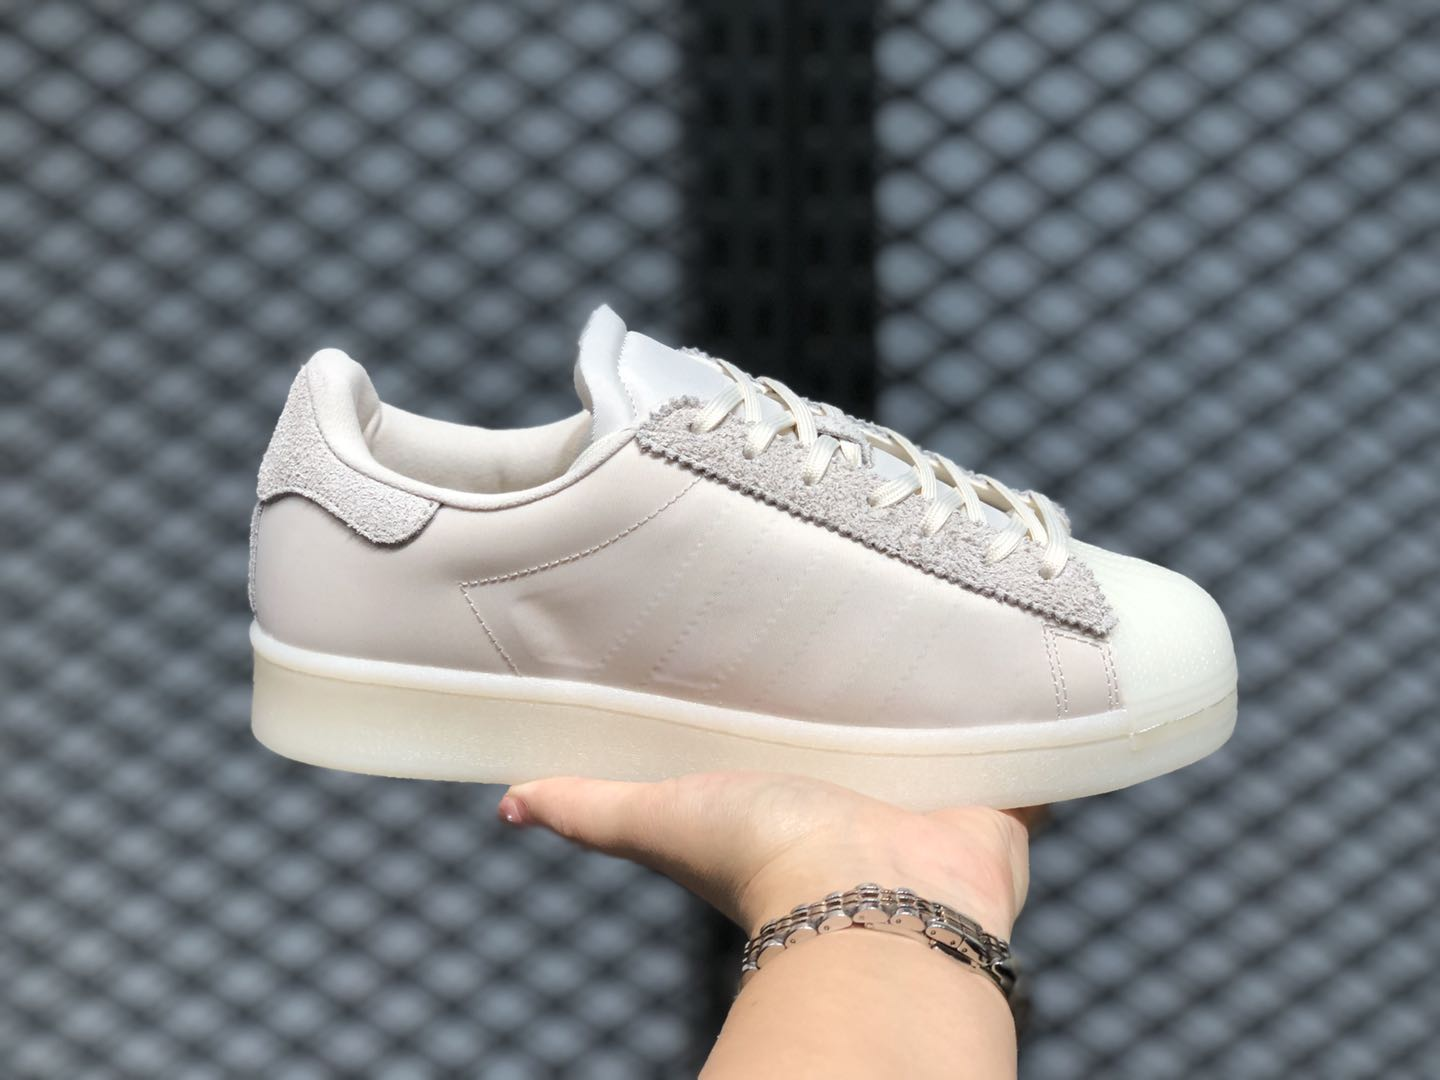 Alcalde número Continental  Eason x Adidas Superstar 50 Cwhite FX8116 New Casual Shoes | Sneakers Big  Sale